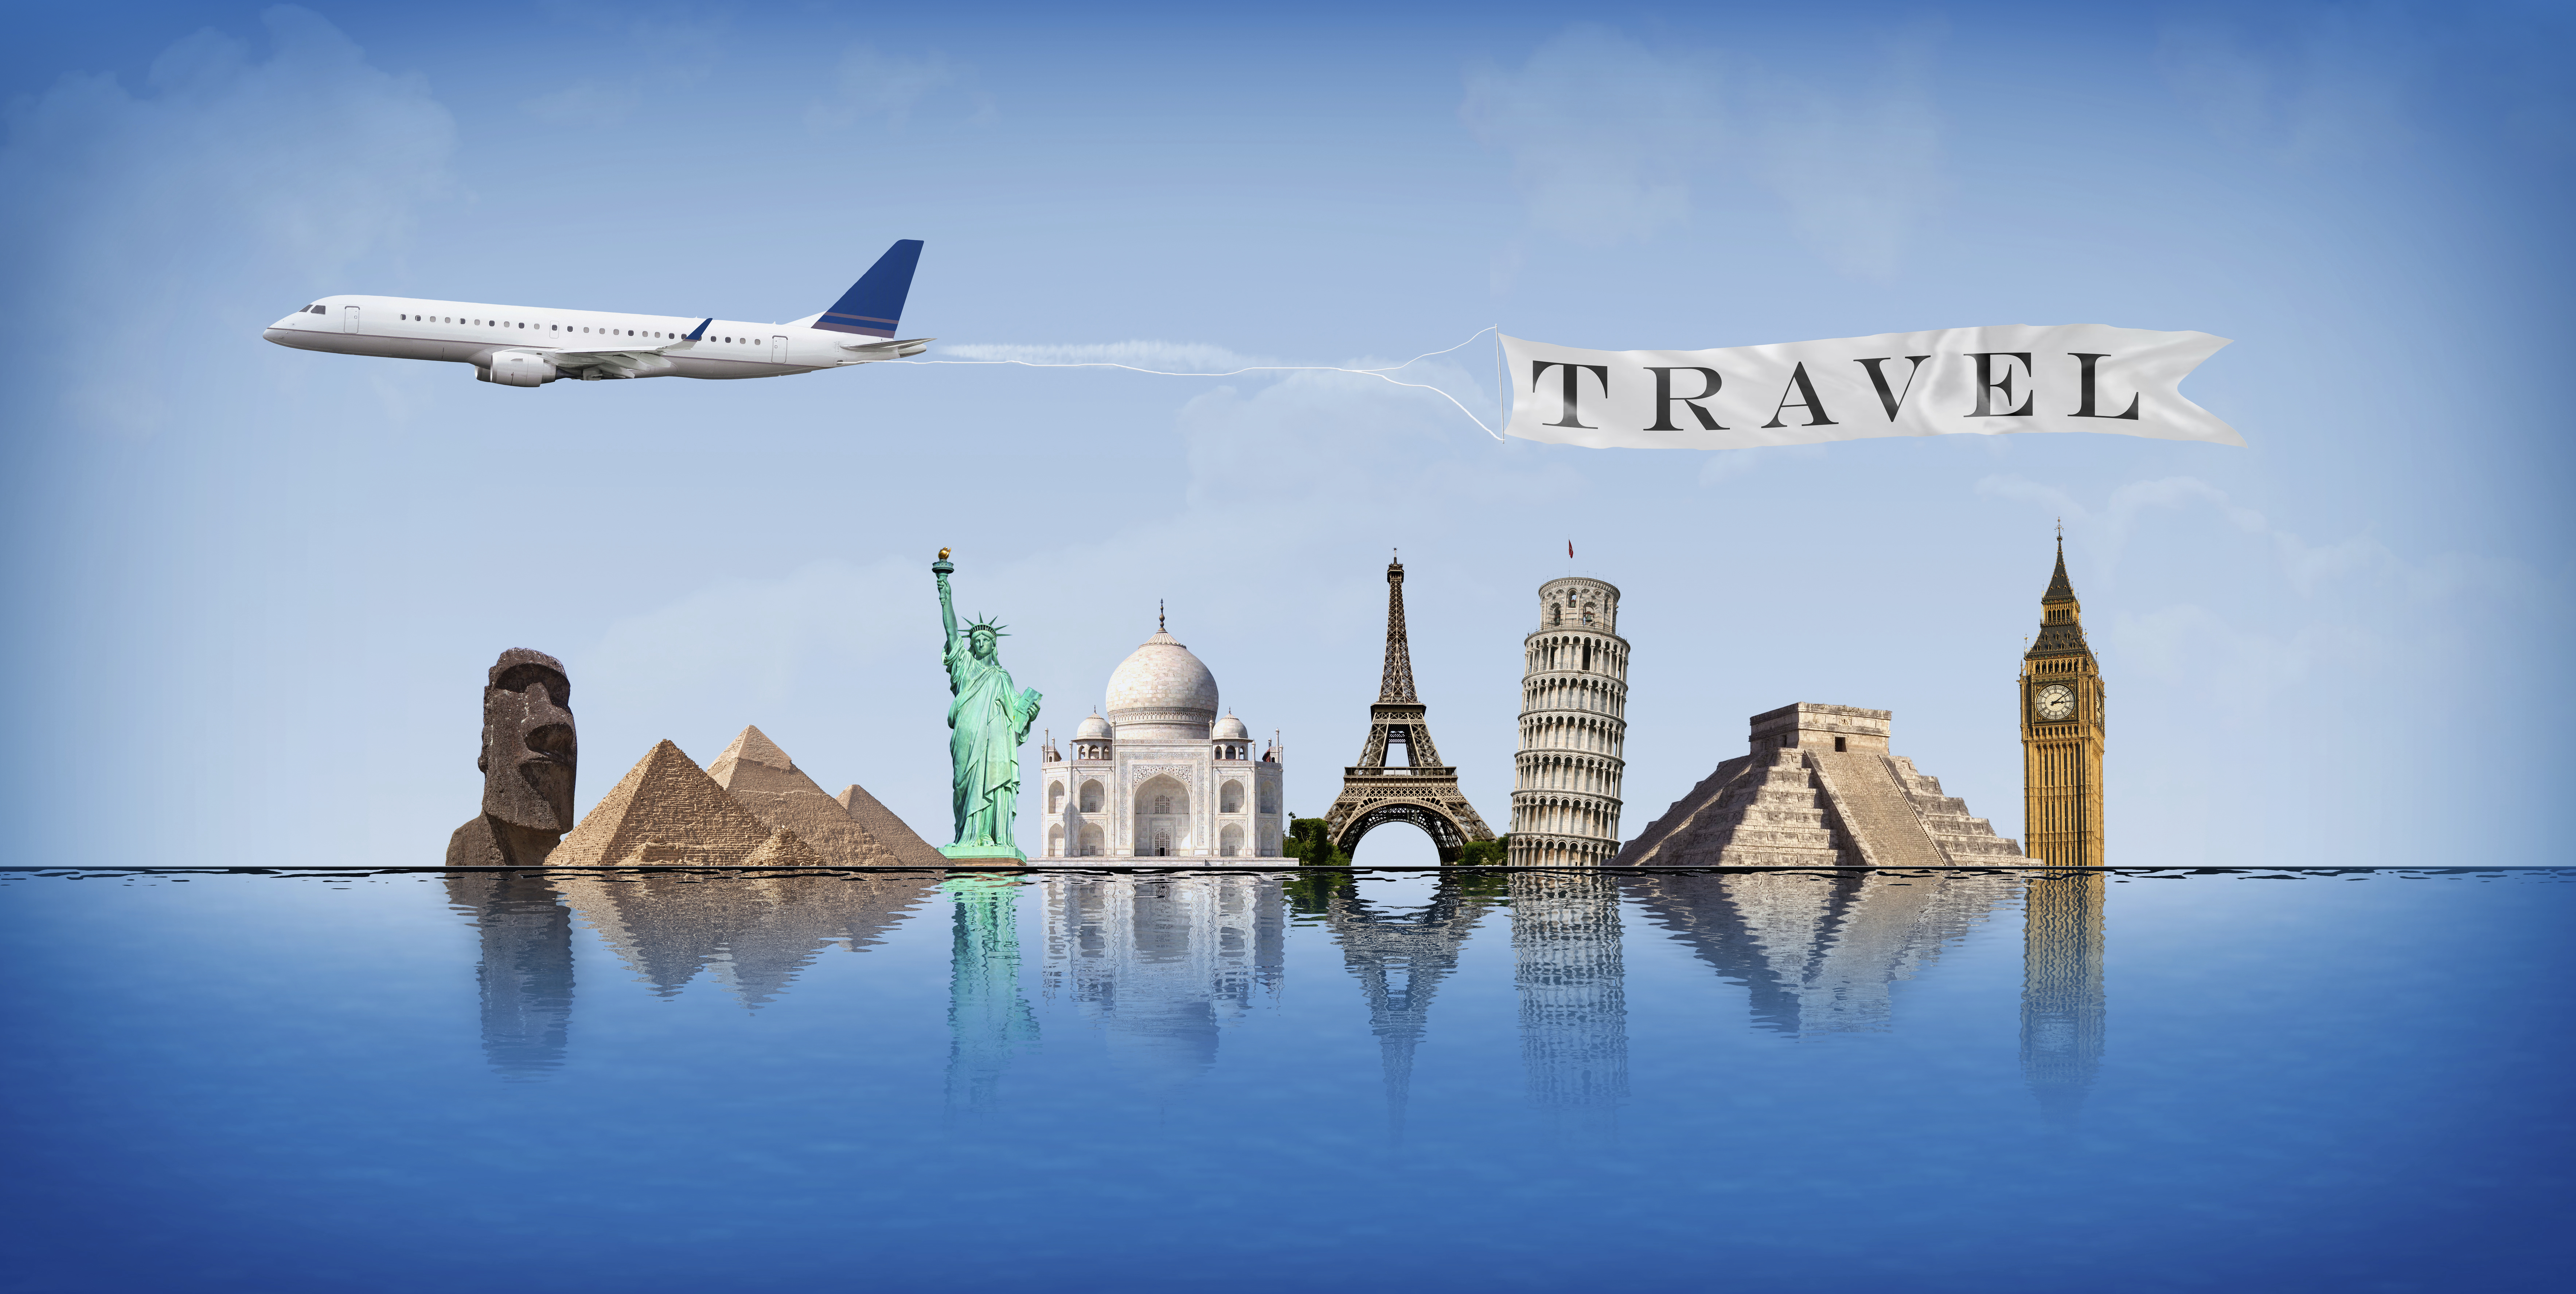 Concept of travel around the world with representation of important monuments reflected in water